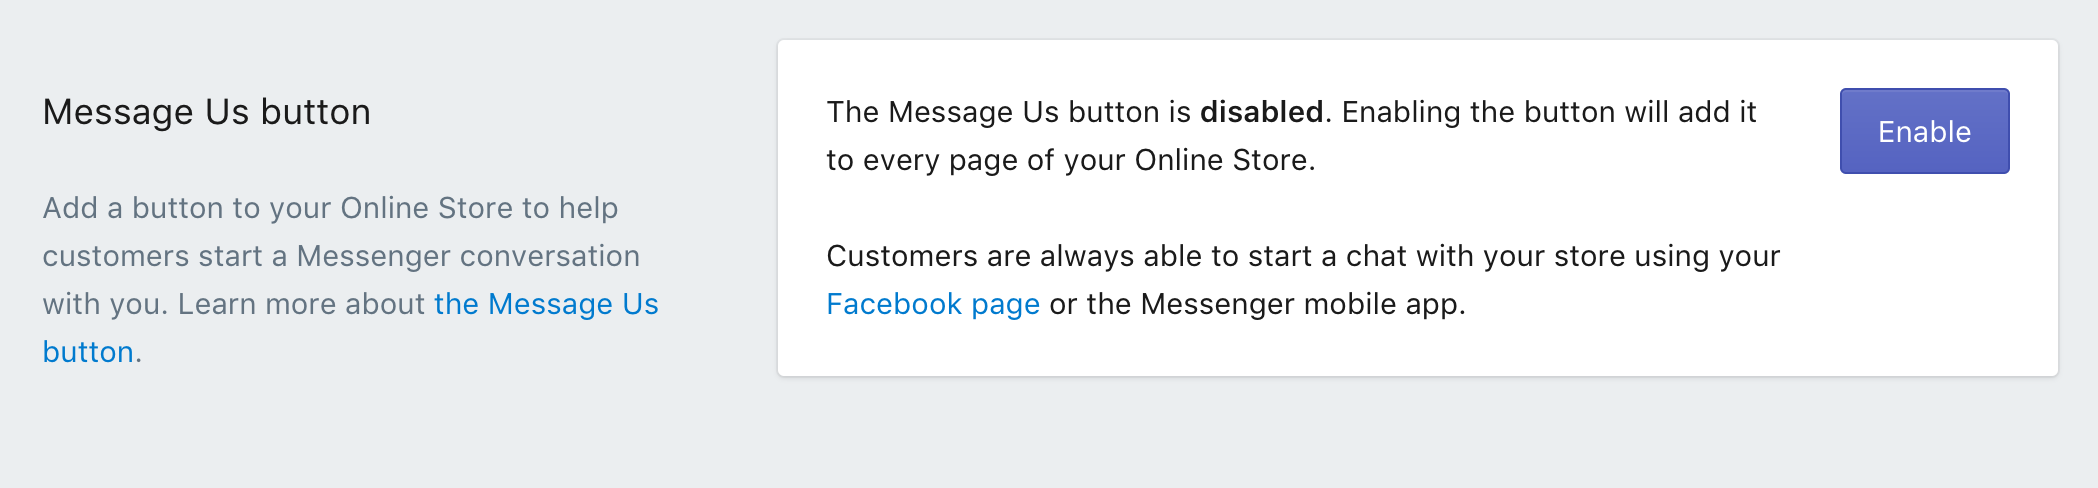 Adding a Message Us button to your online store · Shopify